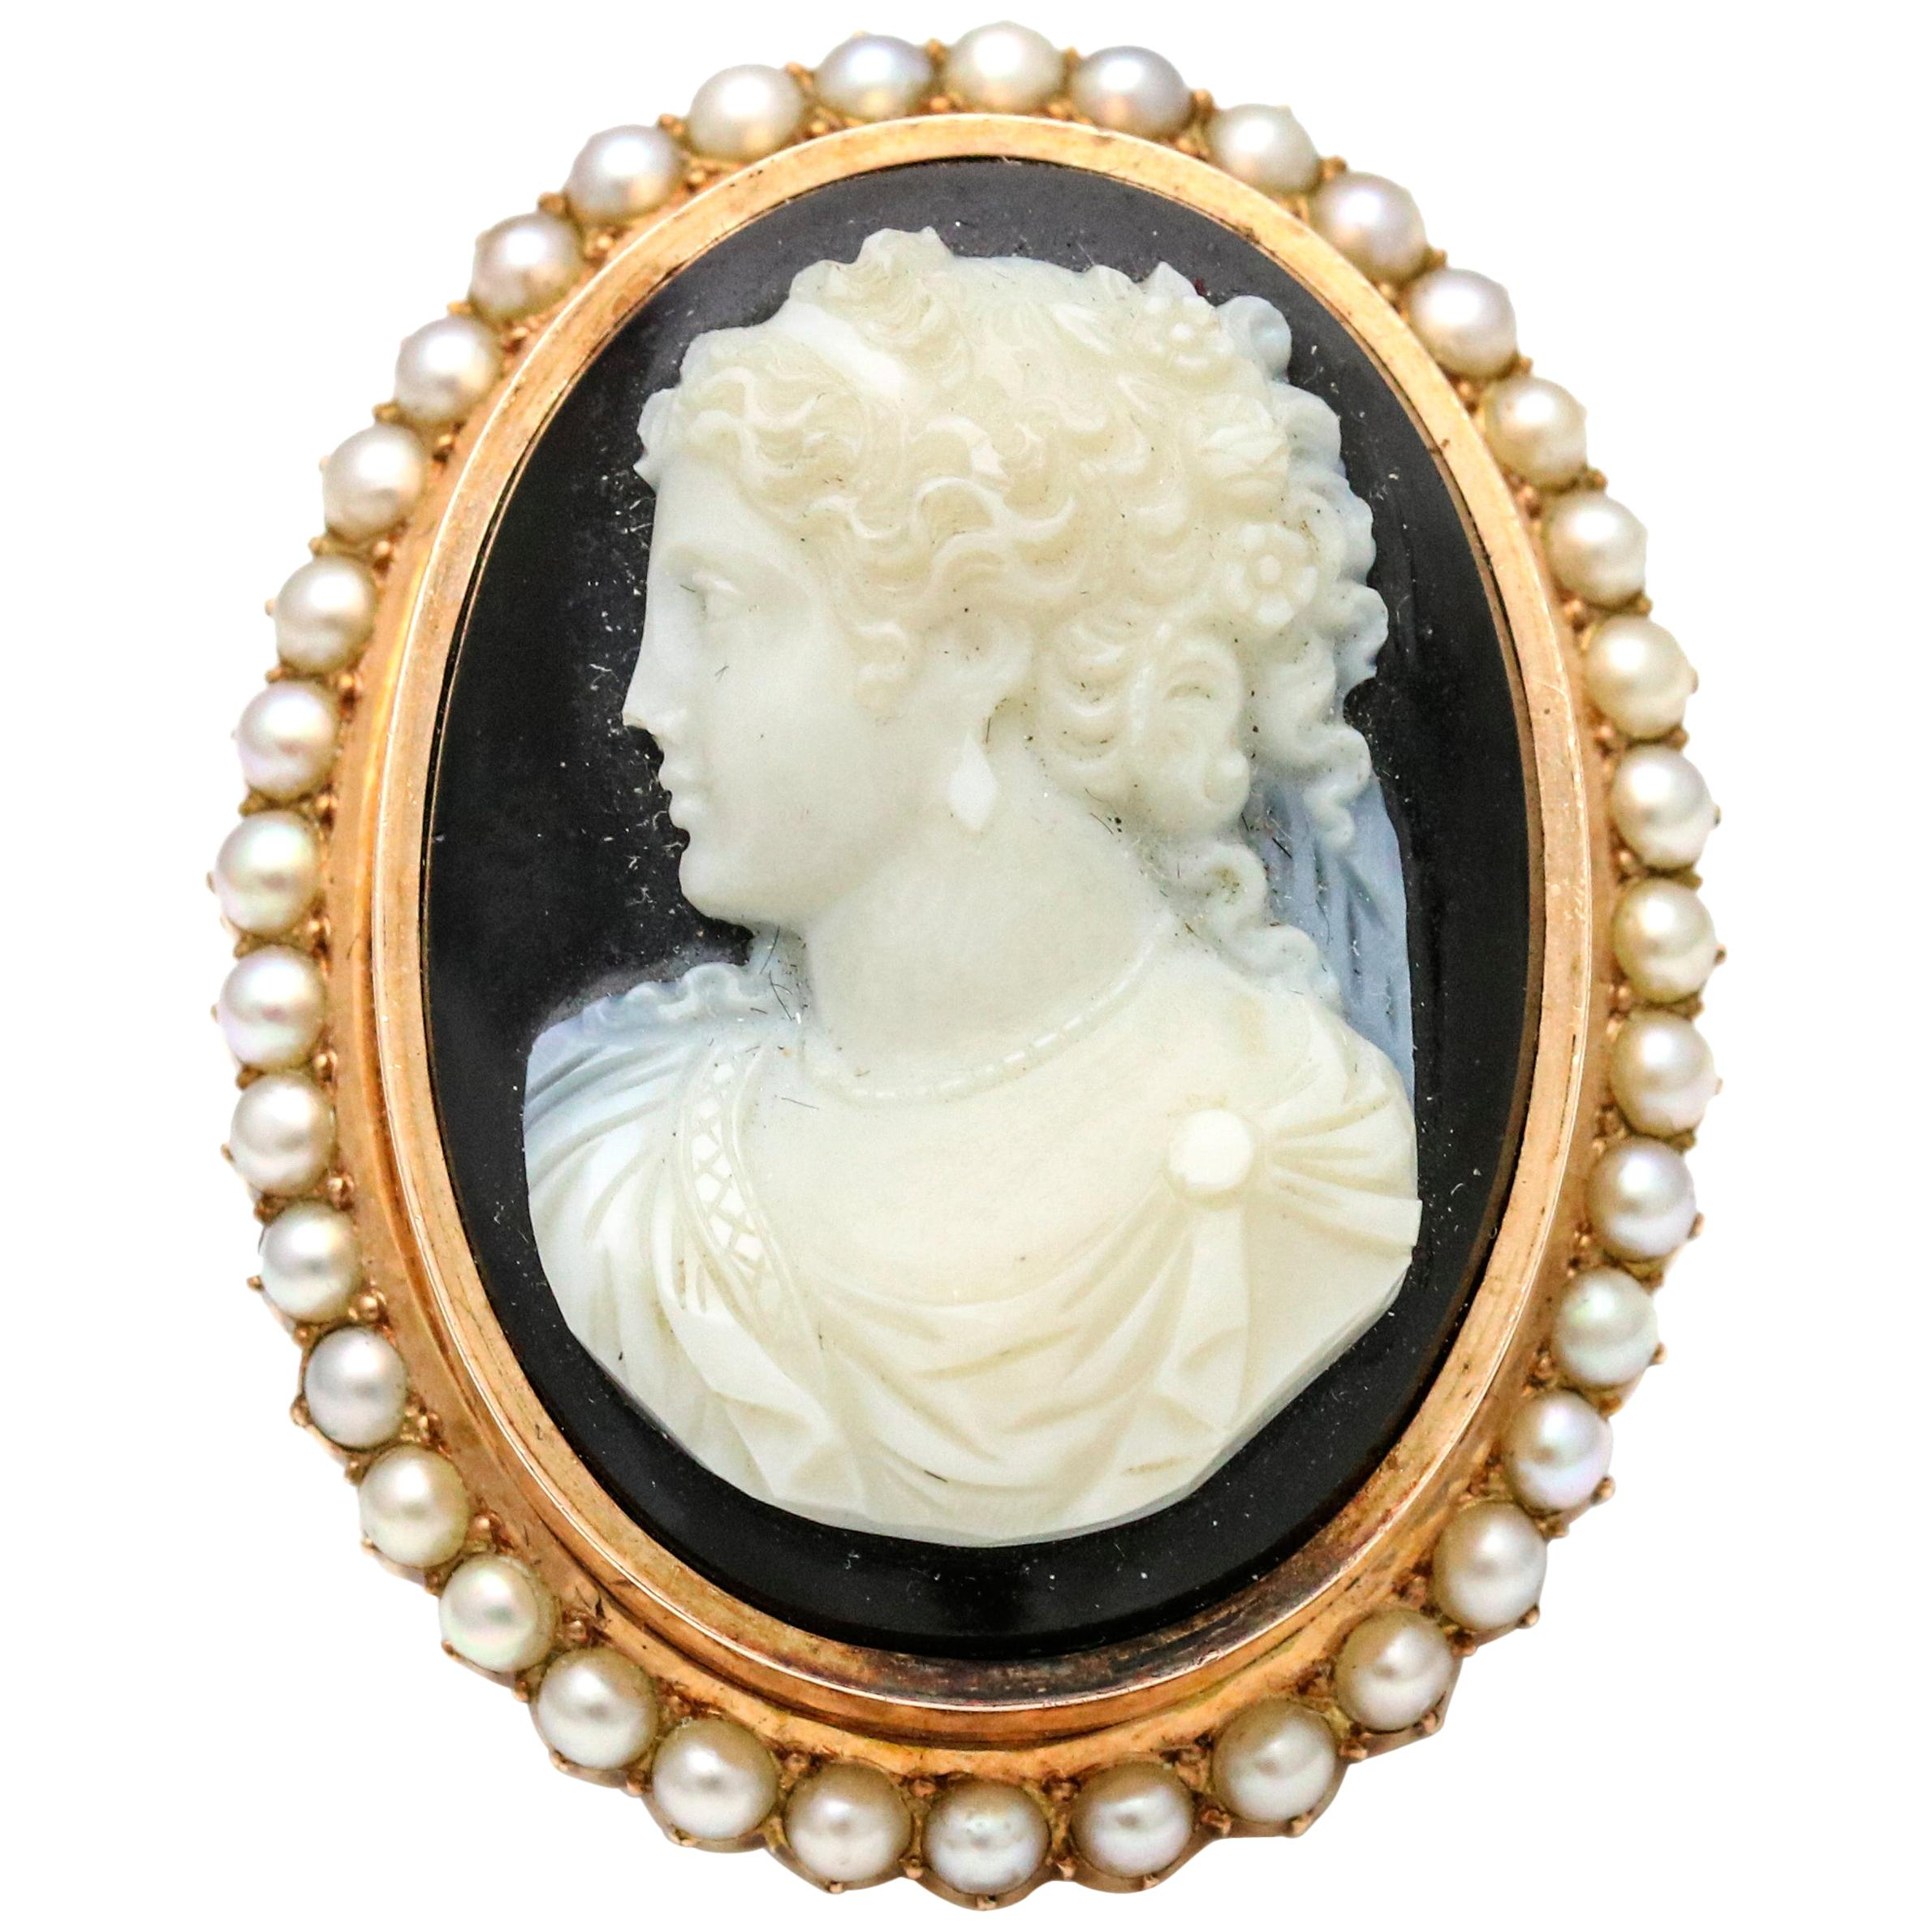 801c67fadce Cameo Brooches - 209 For Sale on 1stdibs